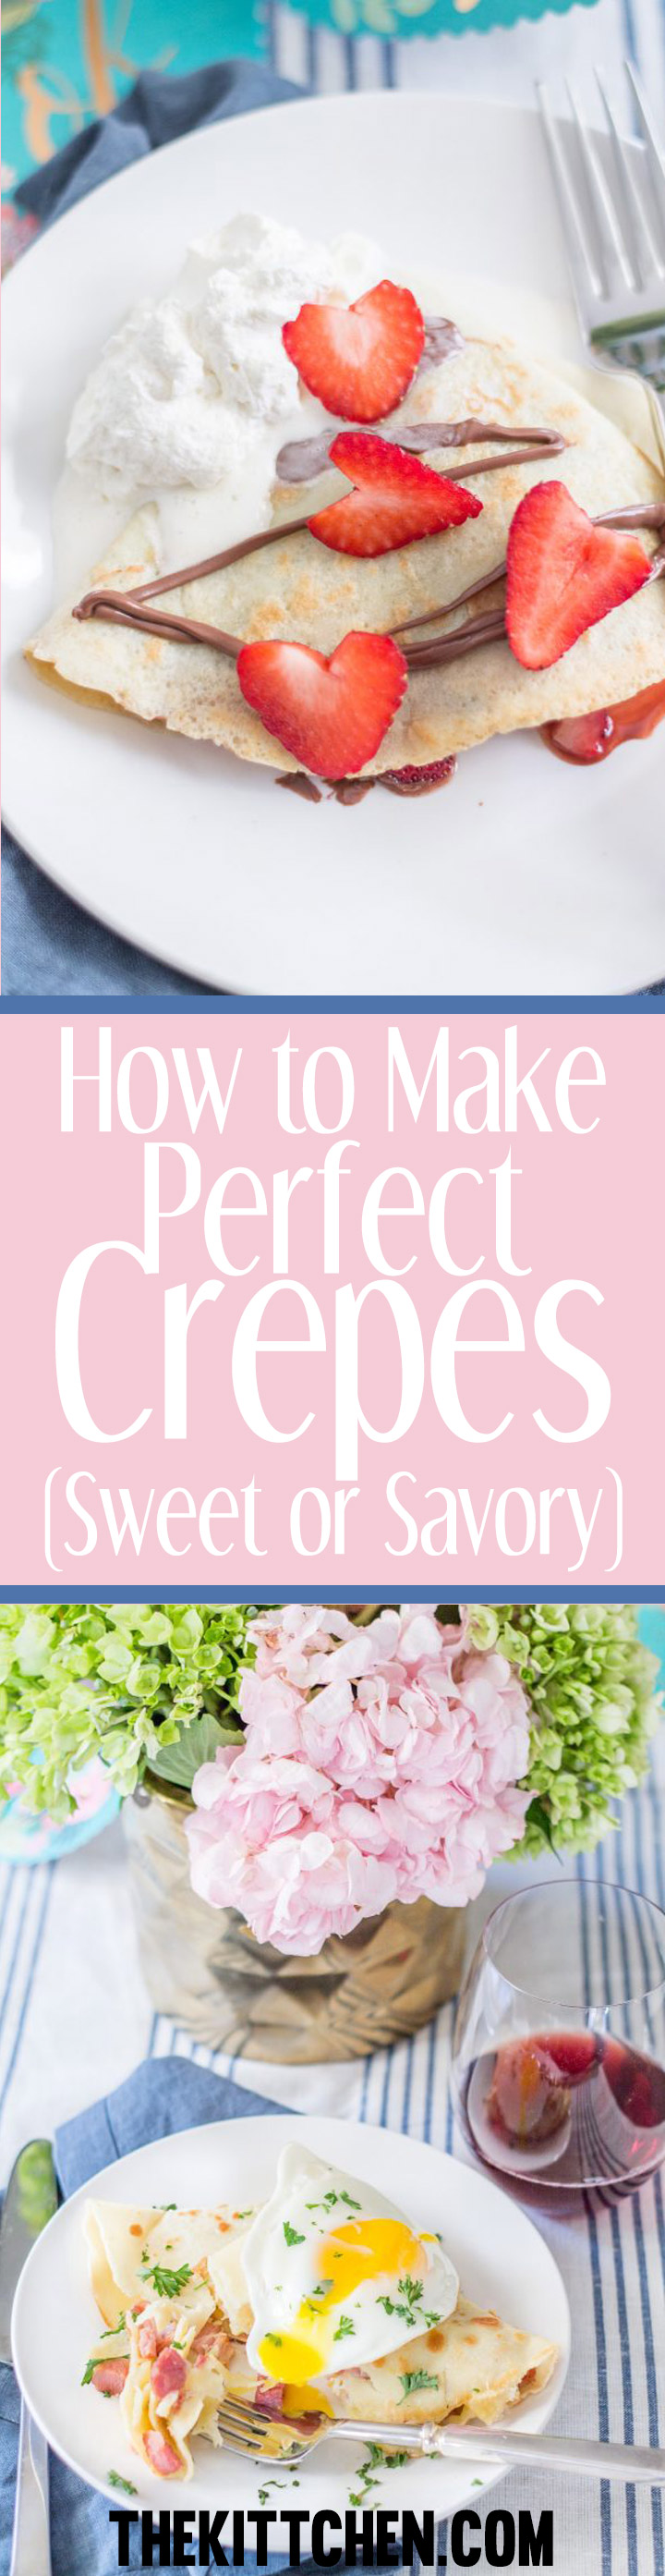 Learn how to make Crepes! Learn an easy recipe for sweet and savory crepes!